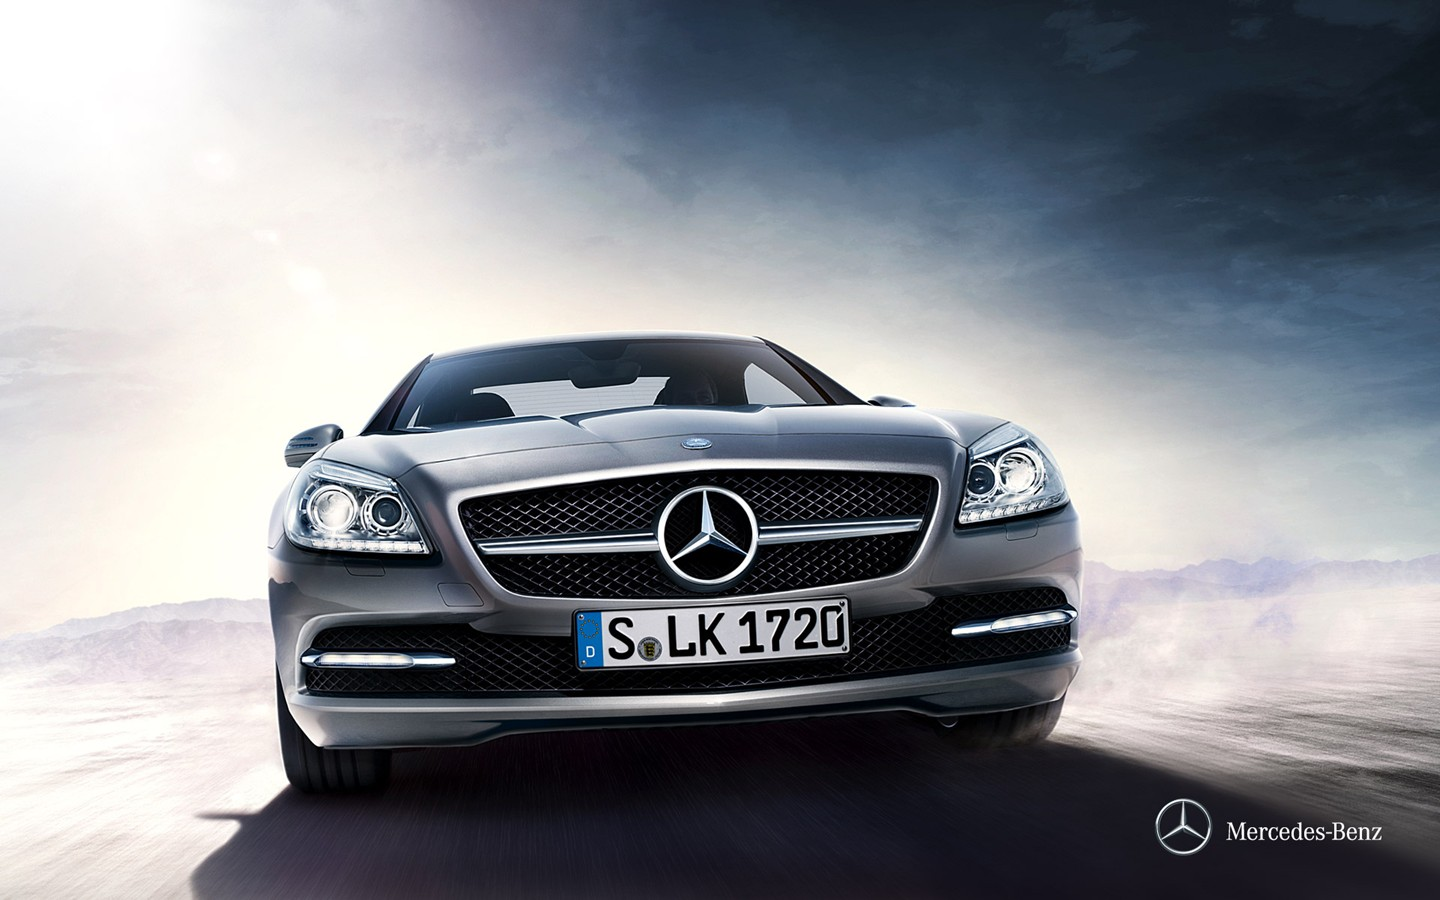 Mercedes-Benz SLK roadster 32012